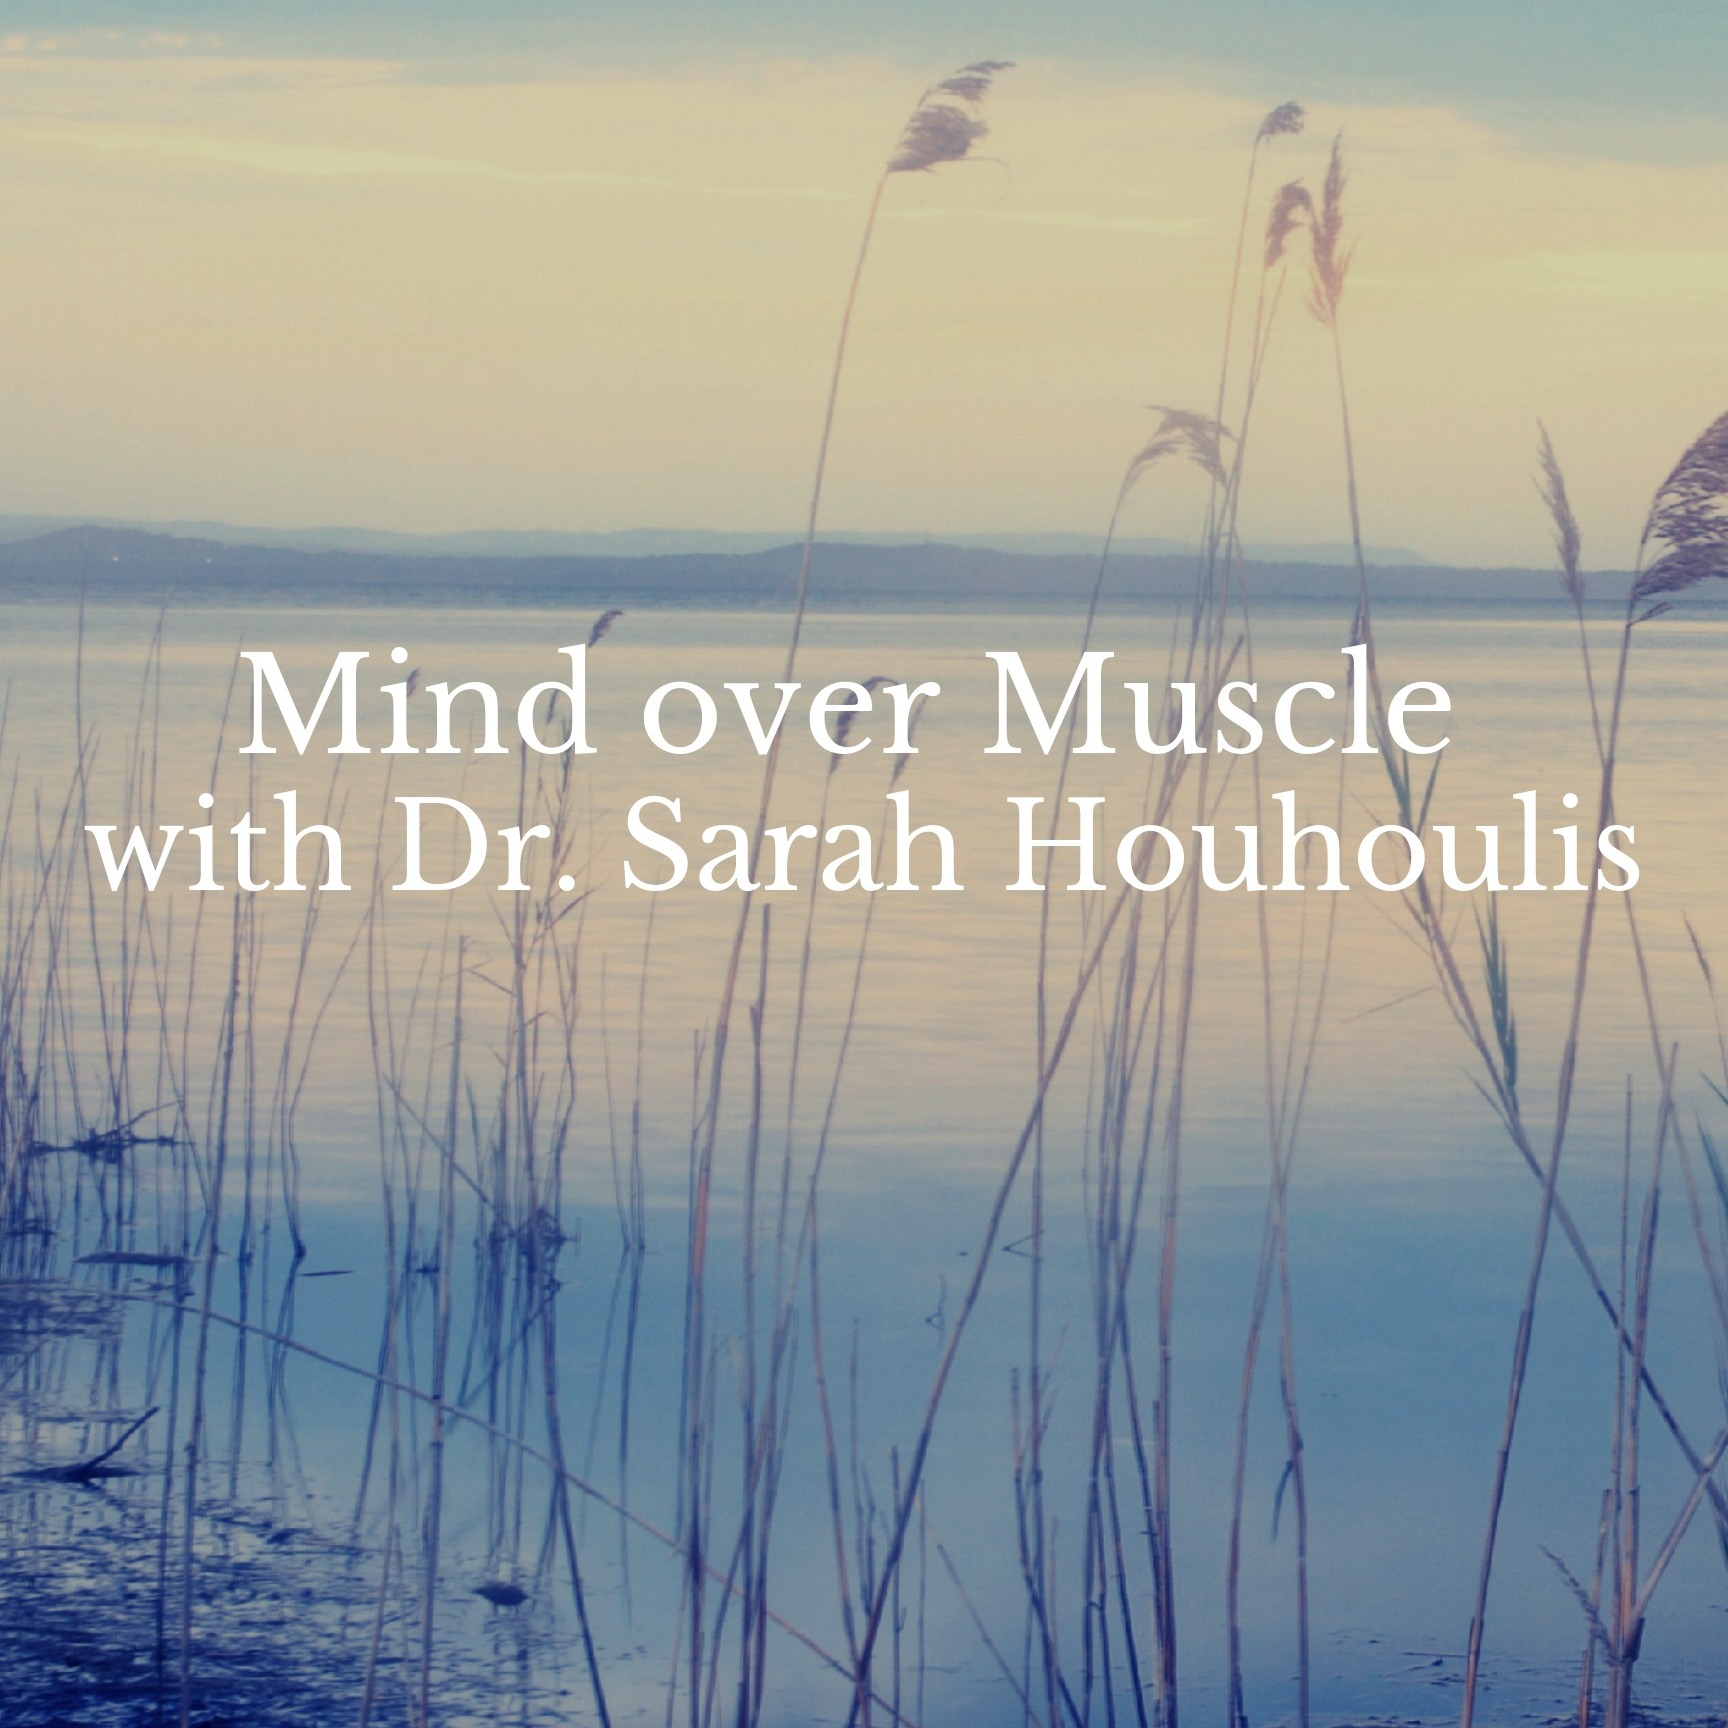 Mind over Muscle with Dr. Sarah Houhoulis